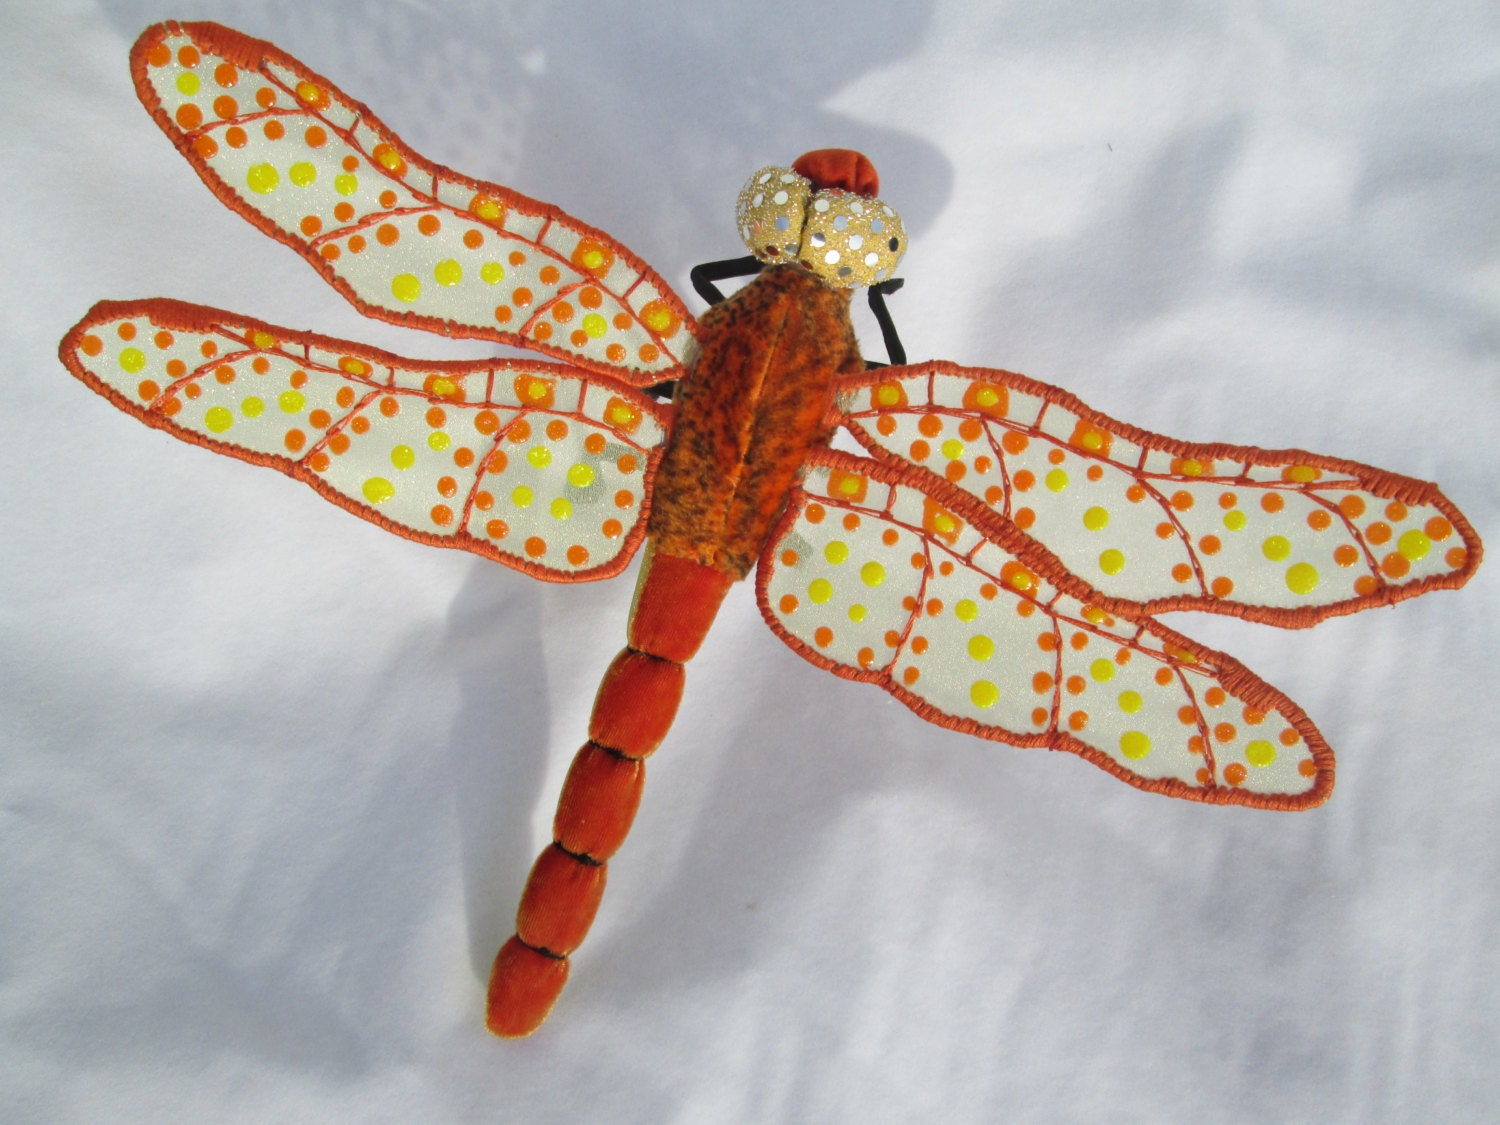 Dragonfly wall hanging art decor orange yellow velvet for Dragonfly wall art